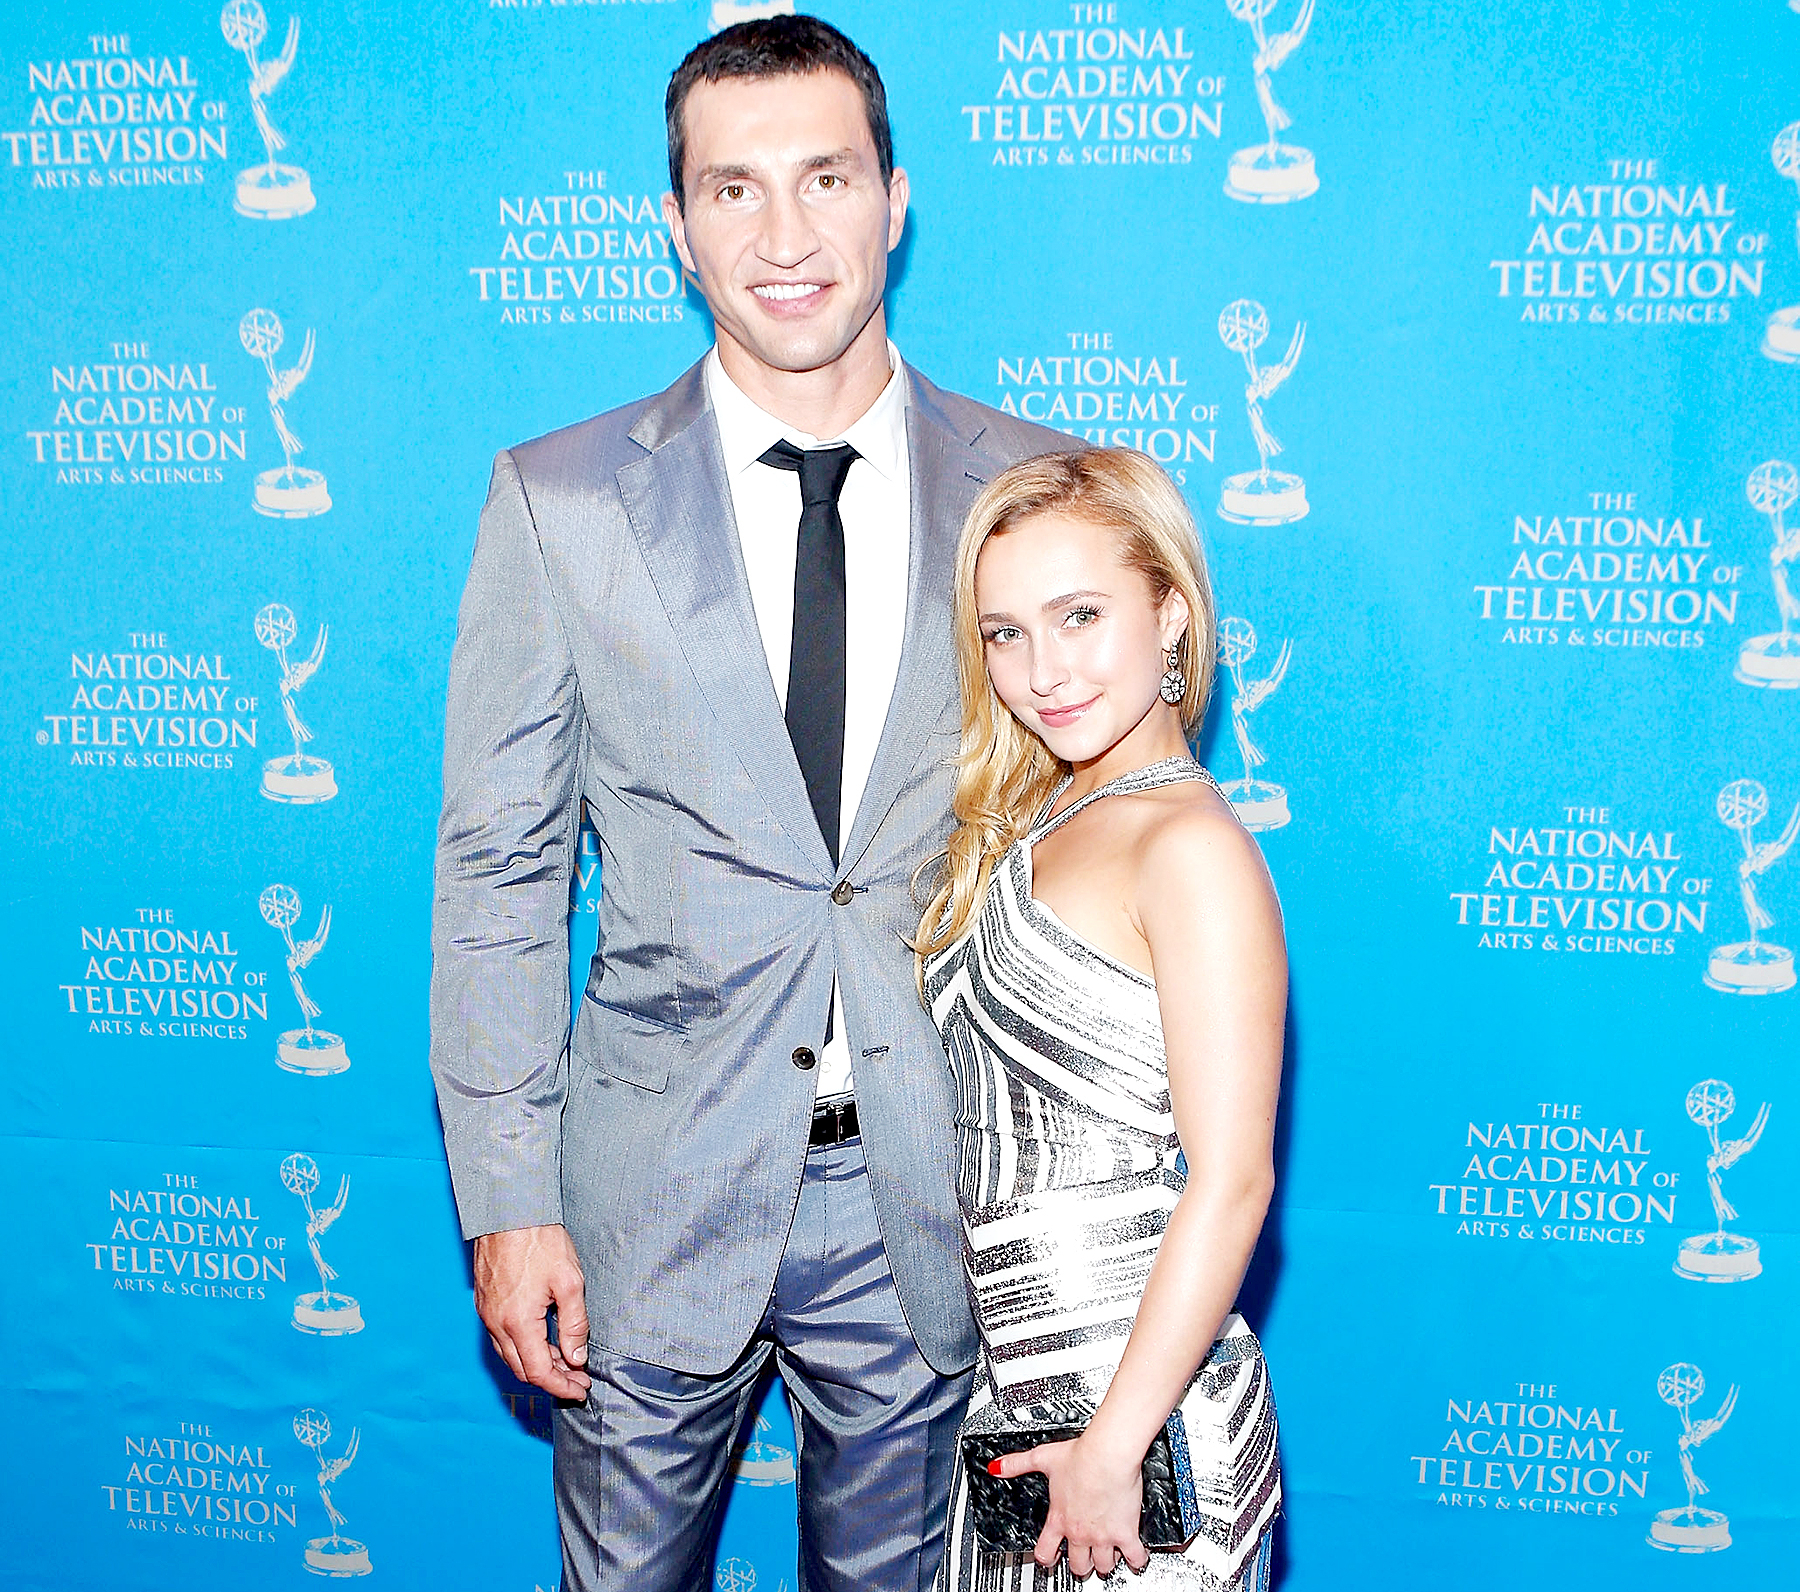 Wladimir Klitschko and Hayden Panettiere attend the 34th Annual Sports Emmy Awards Reception at Frederick P. Rose Hall, Jazz at Lincoln Center on May 7, 2013 in New York City.